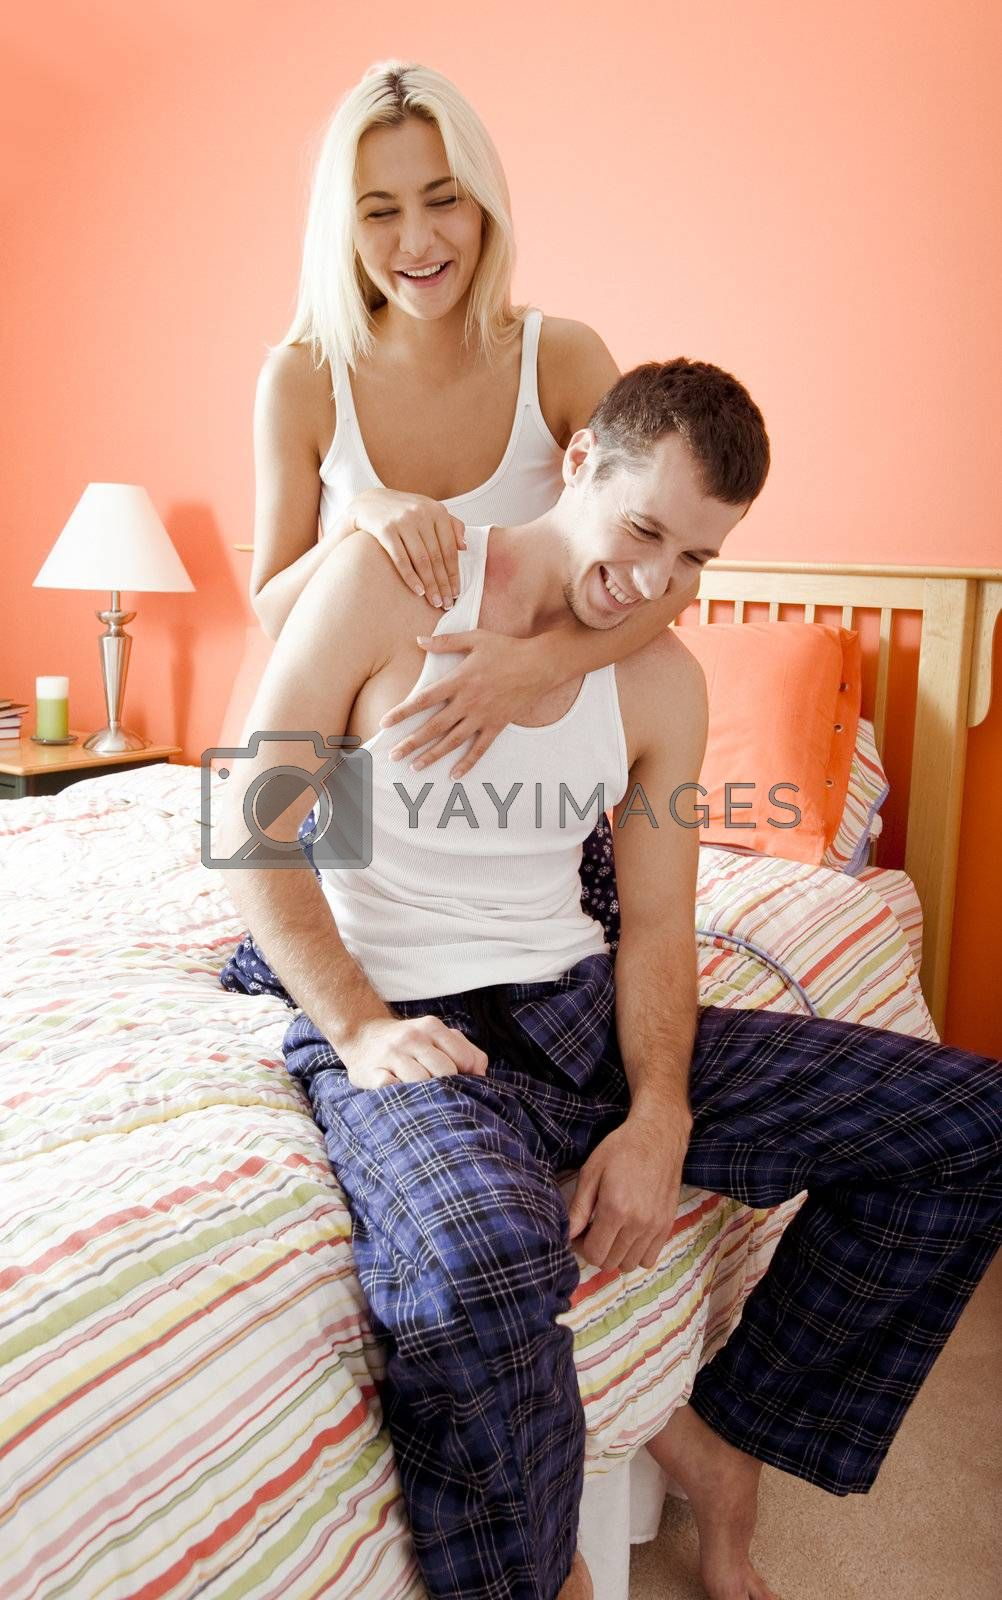 Affectionate couple in pajamas, laughing and relaxing in their bedroom. Vertical format.